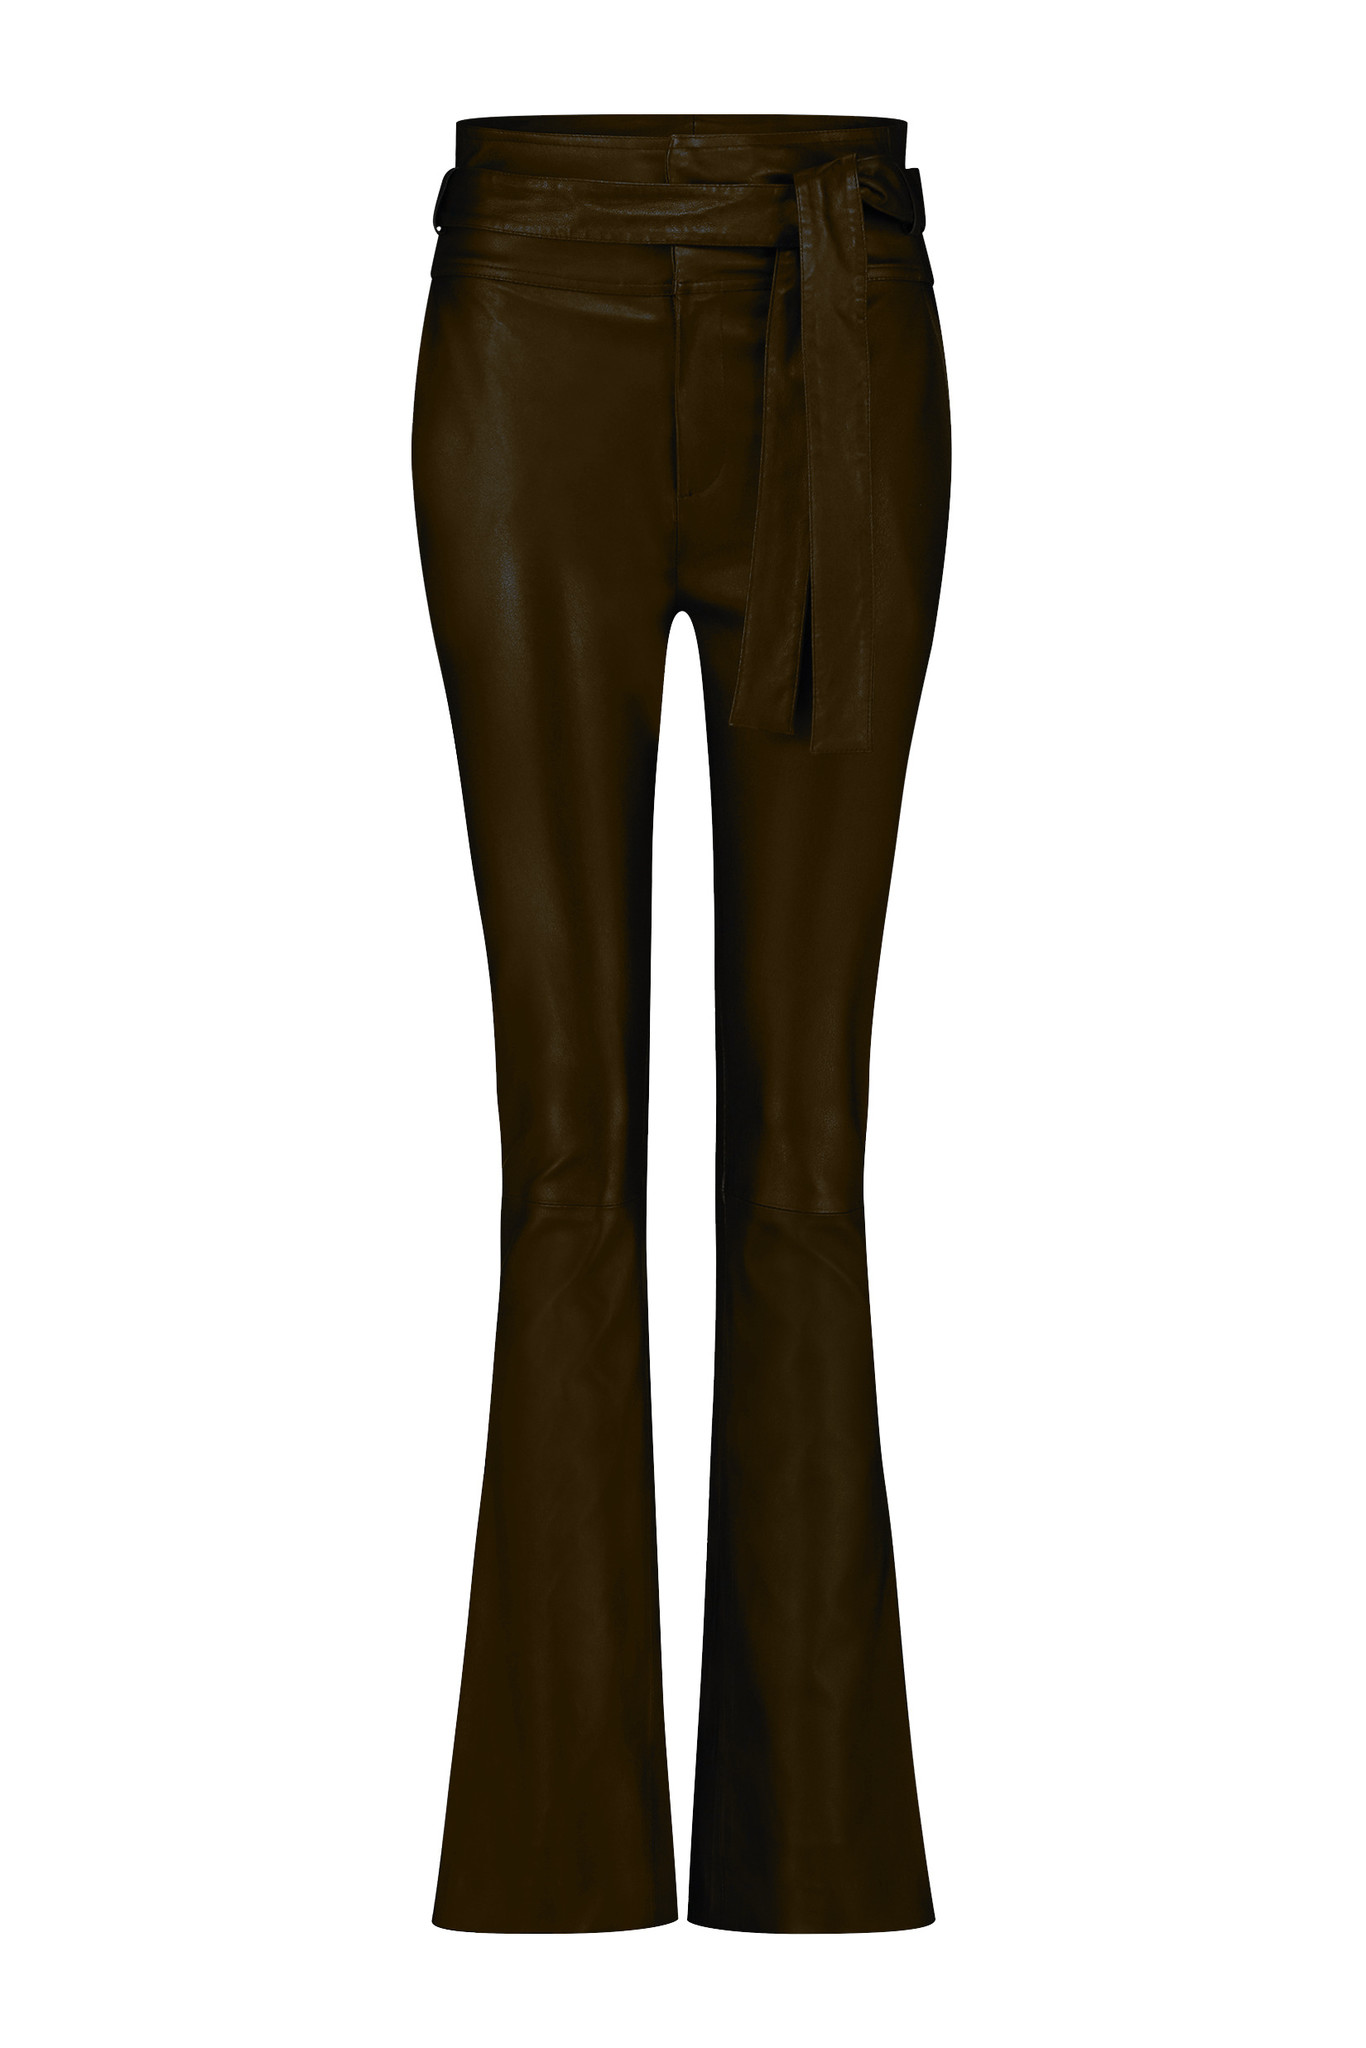 Panny Leather Flare Pant - New Chocolate-1